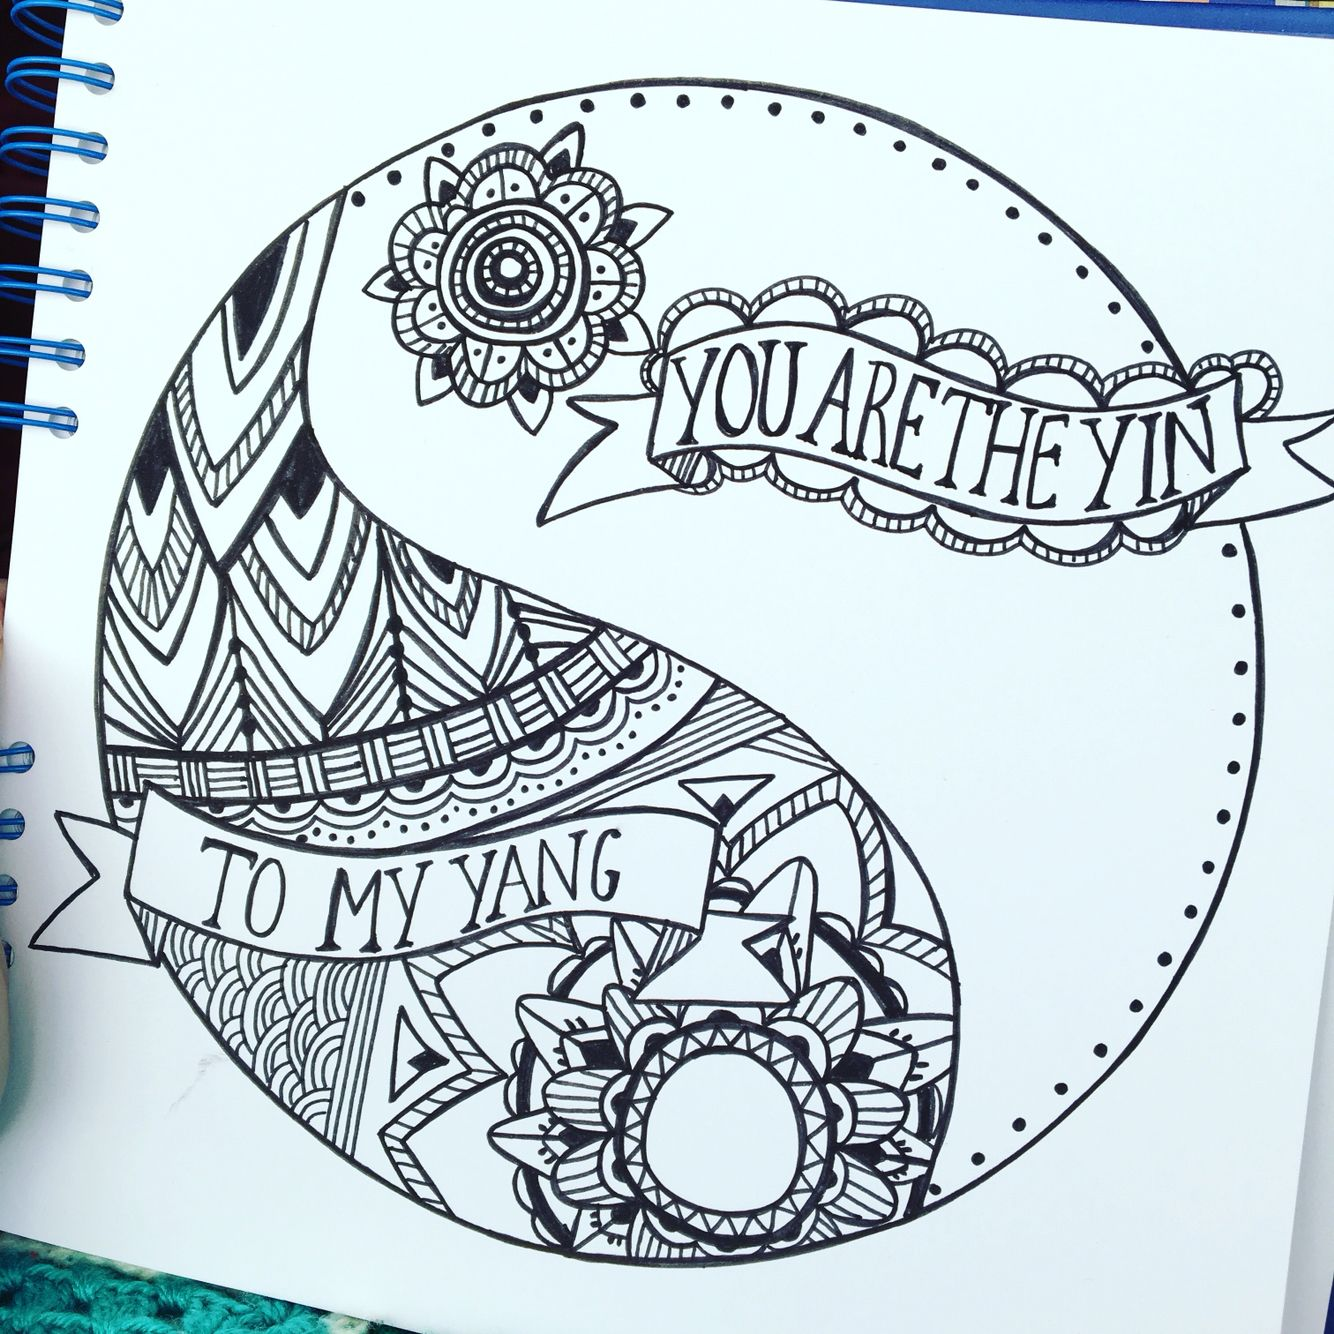 You are the yin to my yang   Happy drawings   Pinterest   Zeichnen ...